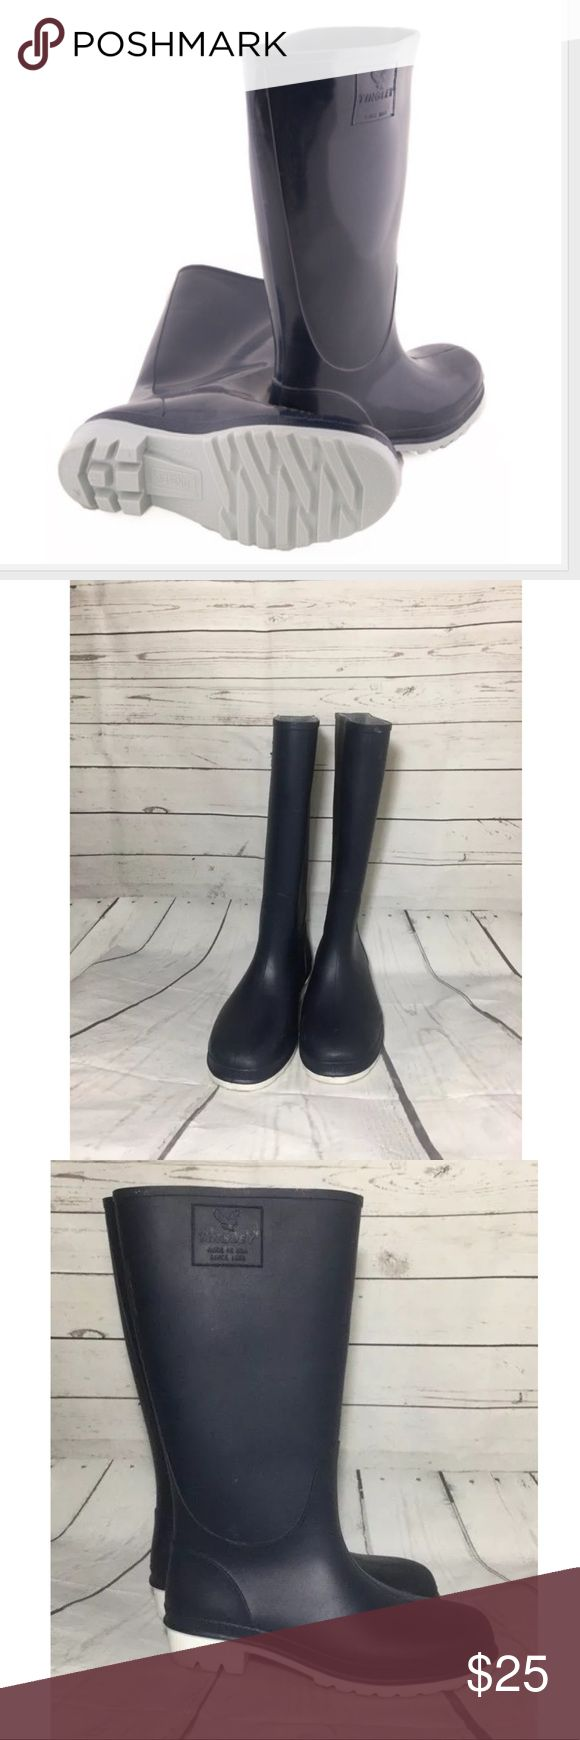 Tingley Women's Trim Fit Knee Boots Size 6 • Tingley  • Welles  • Boots • Neoprene Rubber • Color: Blue  • Size: 6 • Very Good pre-owned, minor scuff on bottom of both heels. Tingley Shoes Winter & Rain Boots